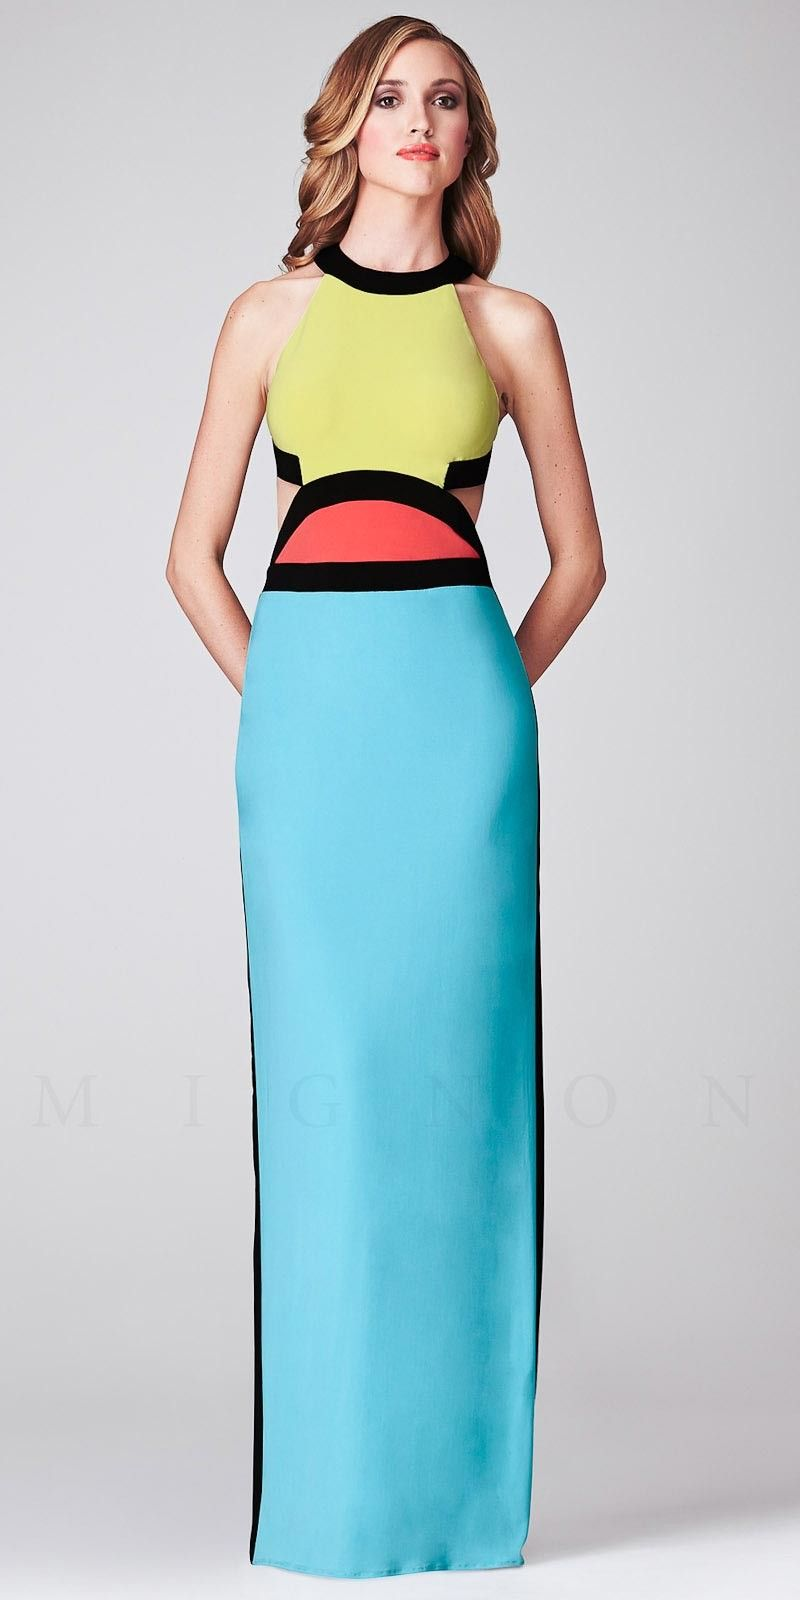 Cleo-Collar Color Block Open Back Evening Dresses by Mignon-image ...